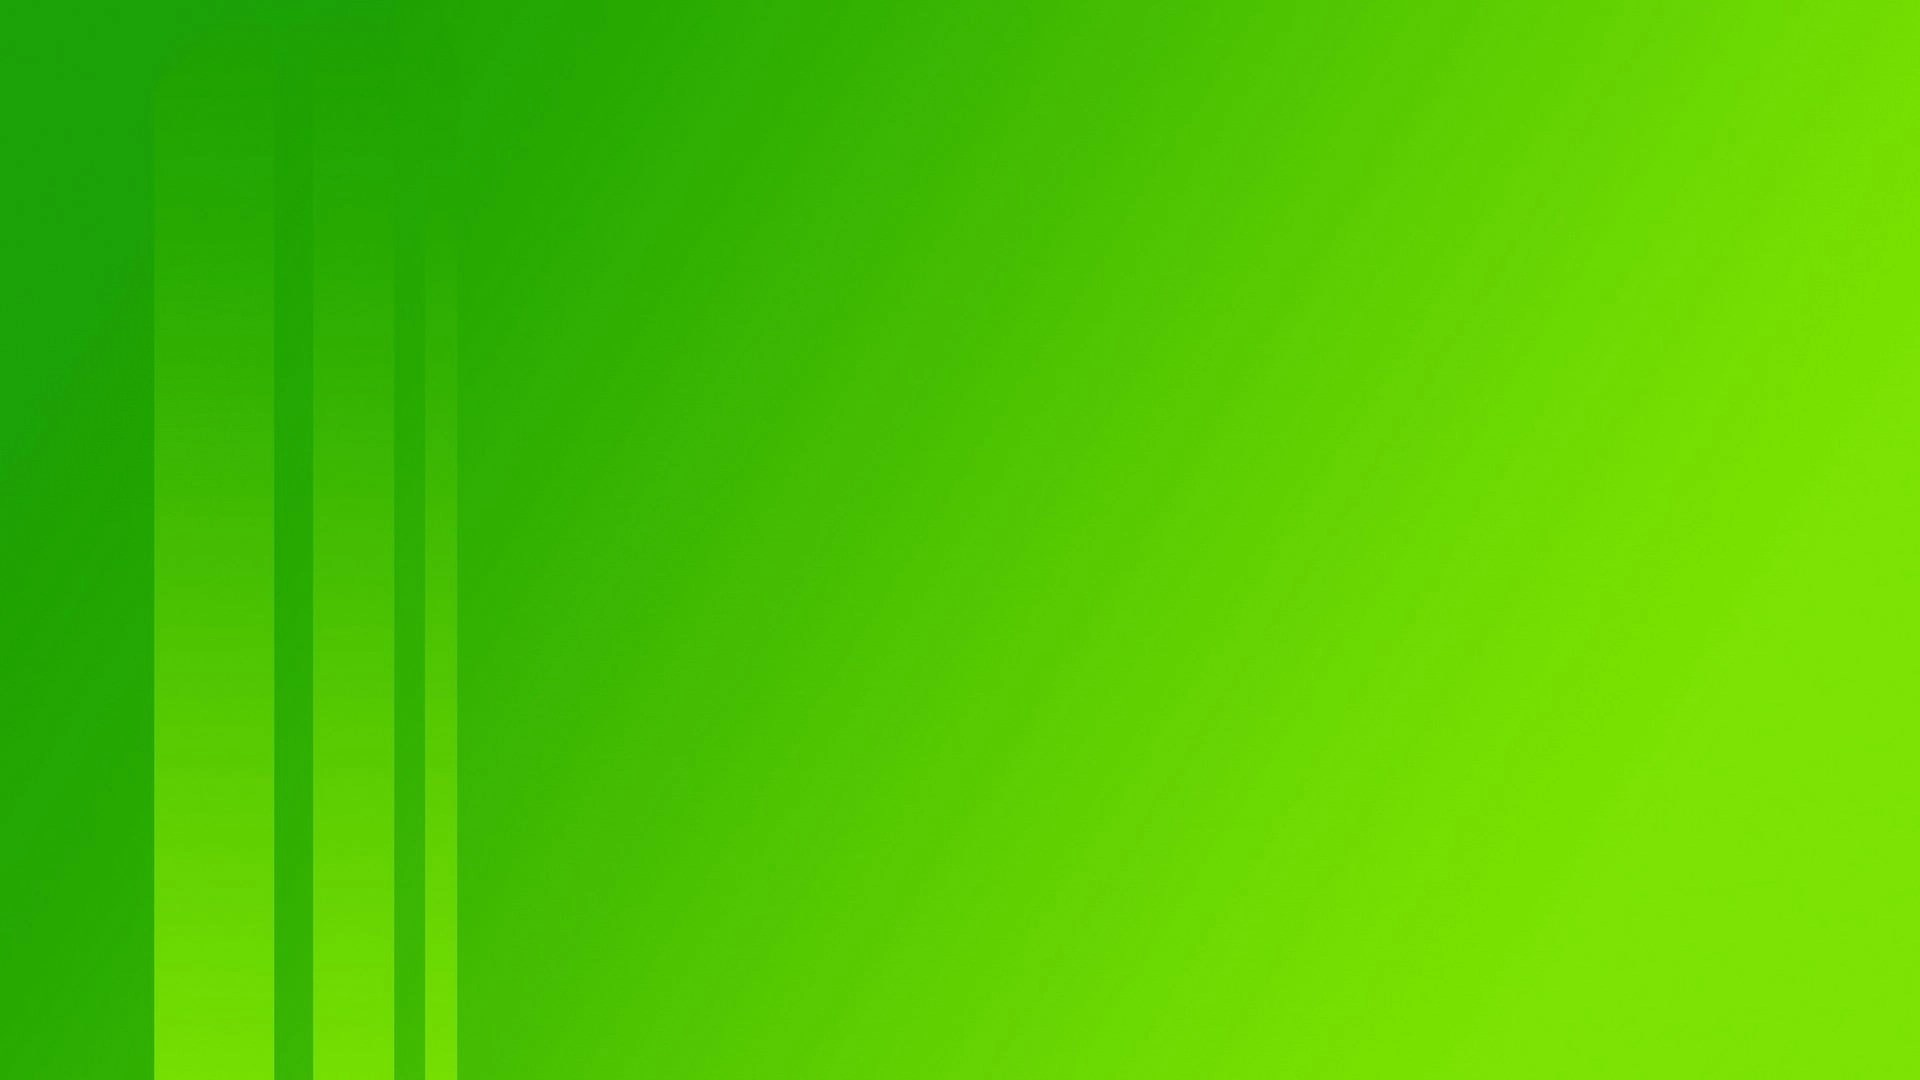 Free 21 Solid Backgrounds In Psd